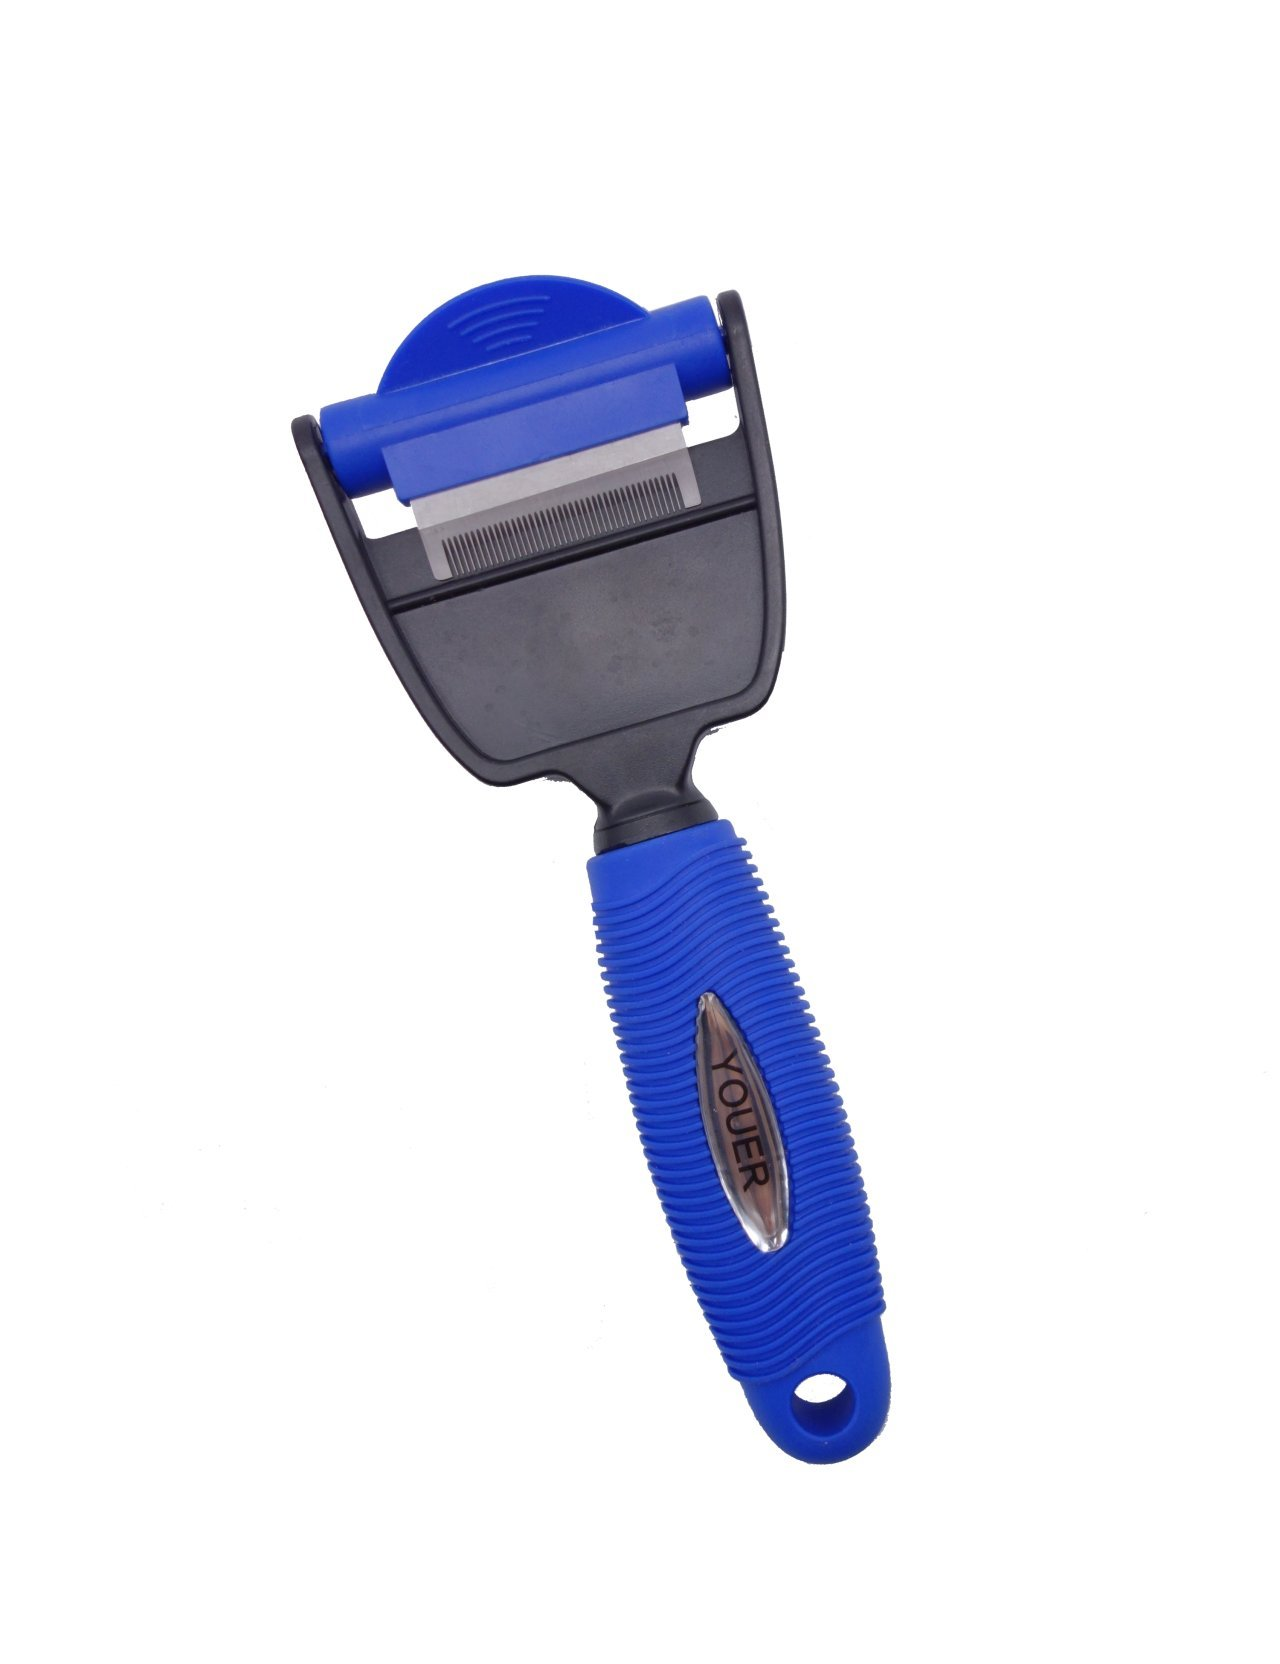 Dog brush for Shedding | de-Shedding and Groomming Tool | Reduce 90%+ Shedding for Short and Long Hair Dogs and Cats by Youer Lifestyle by Youer